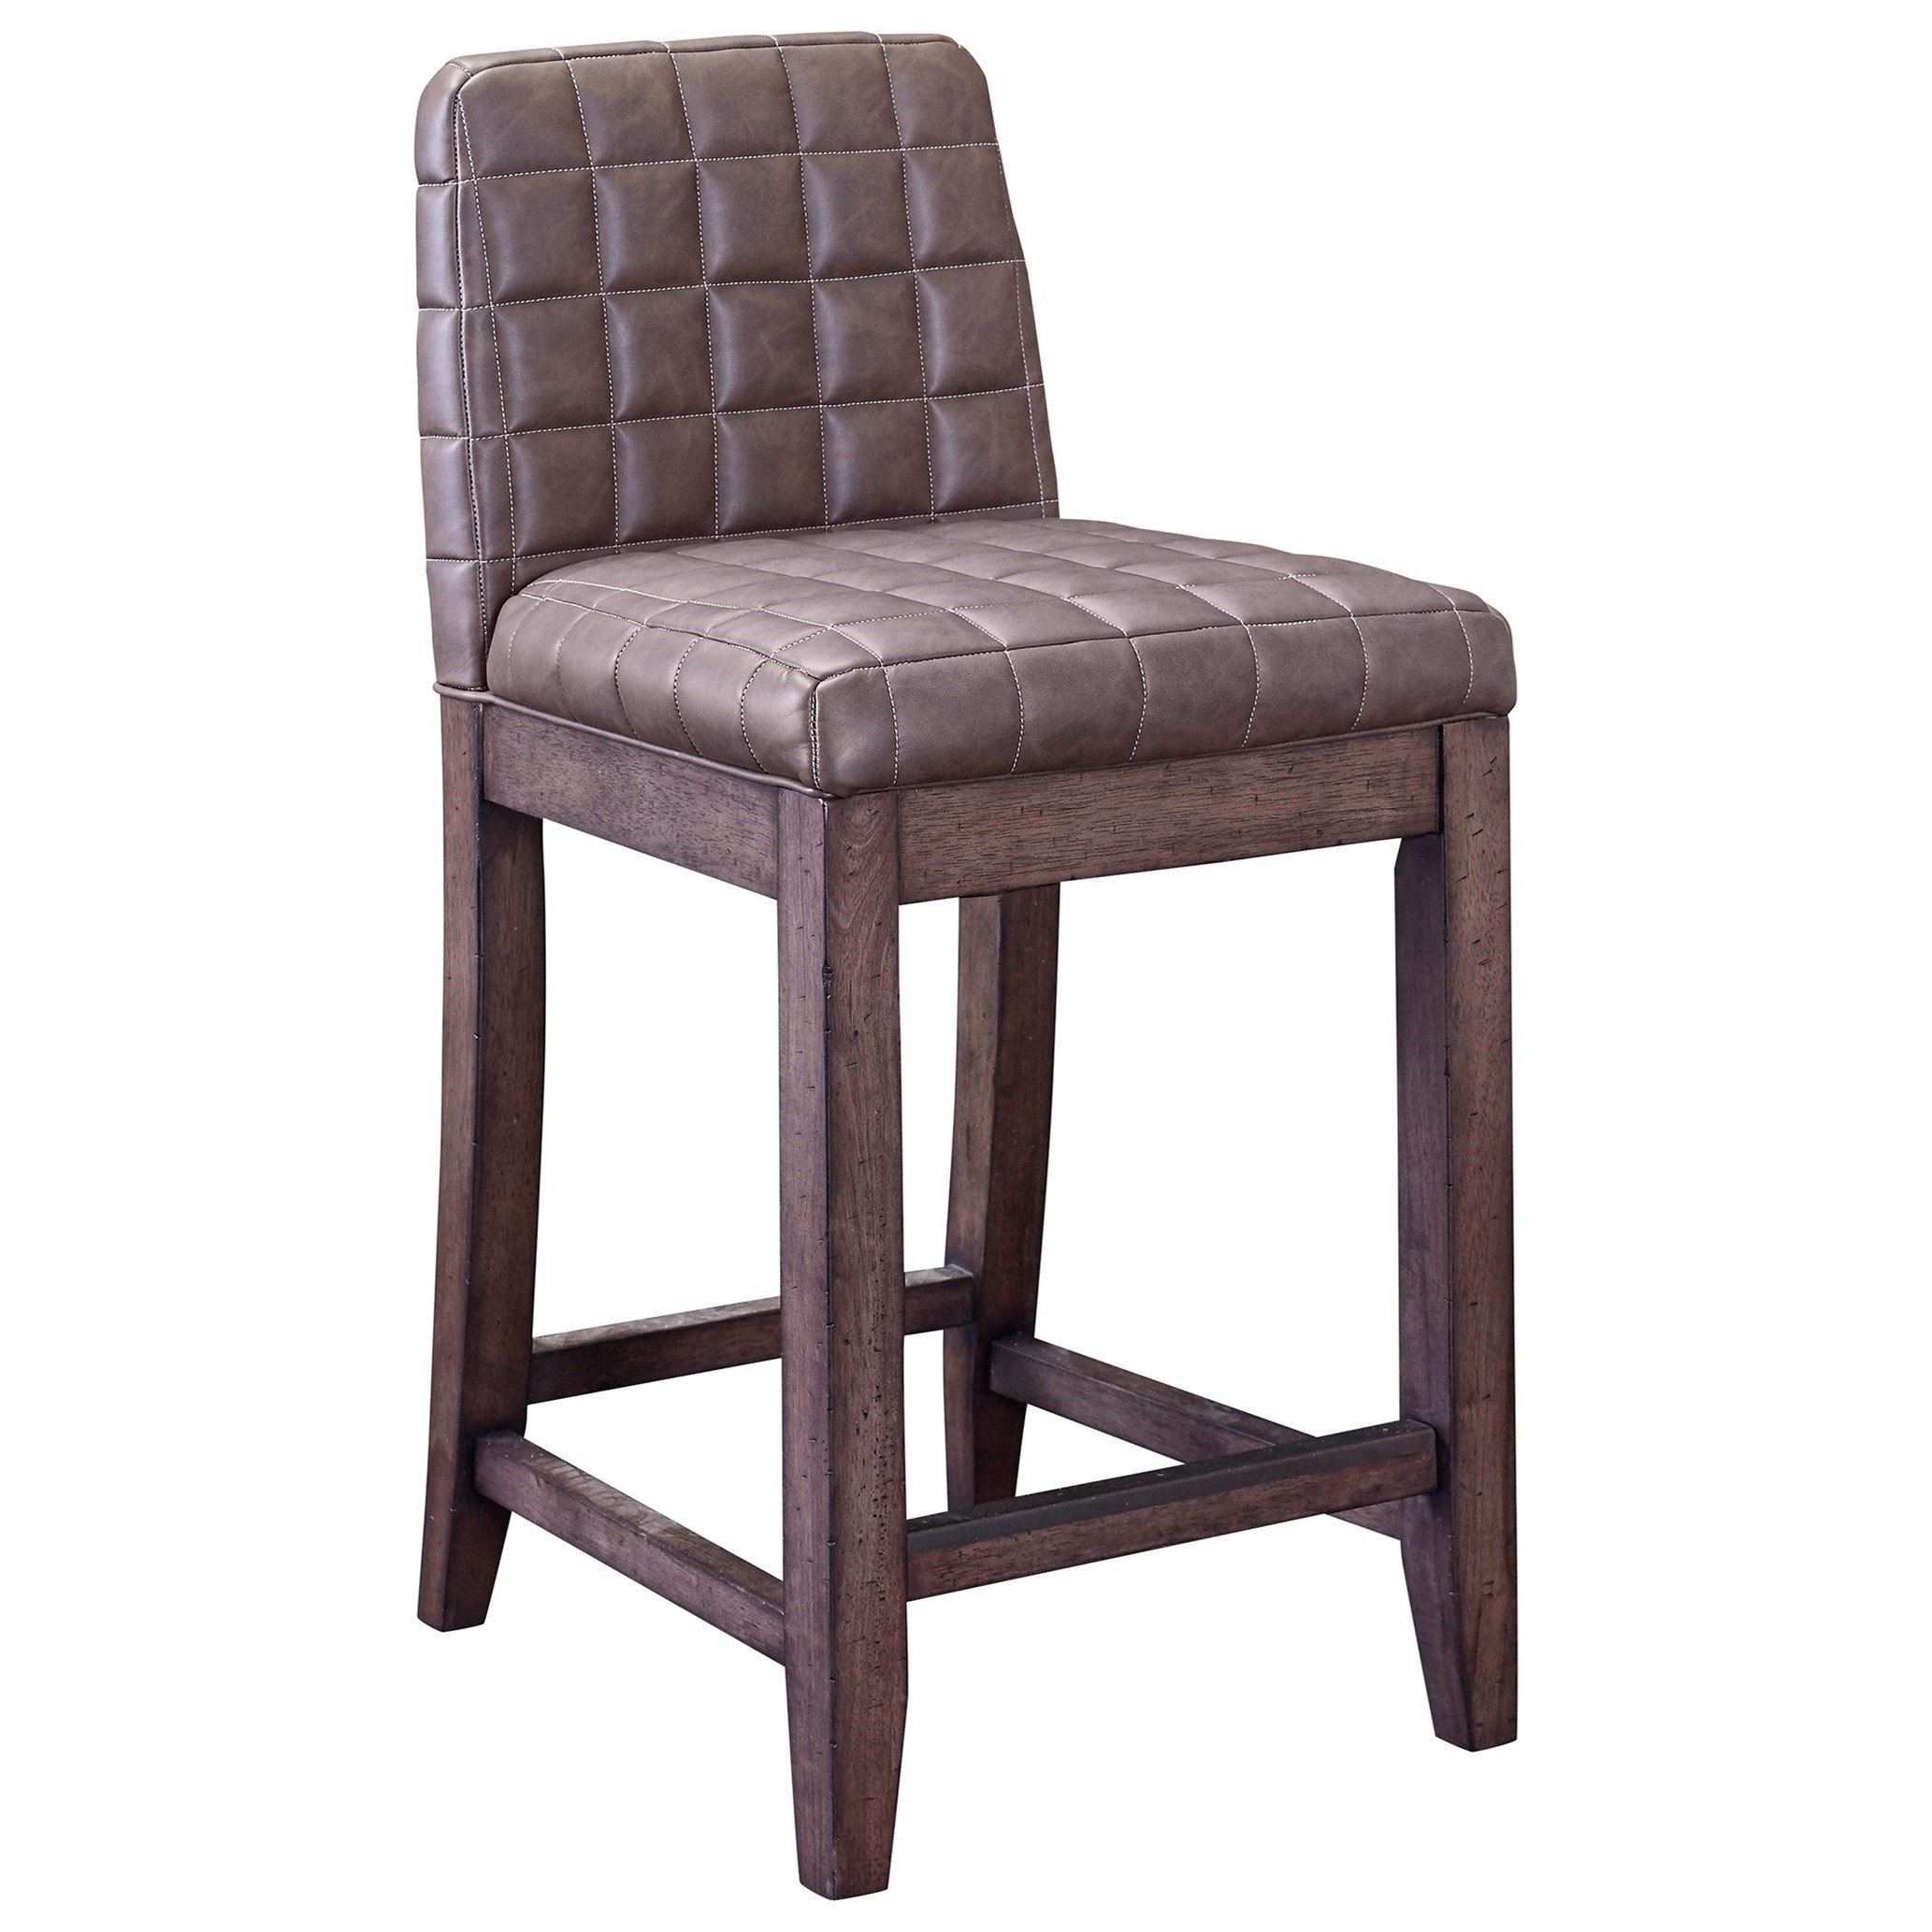 Broyhill Furniture Bedford Avenue Lefferts Avenue Counter Stool - Item Number: 8615-529